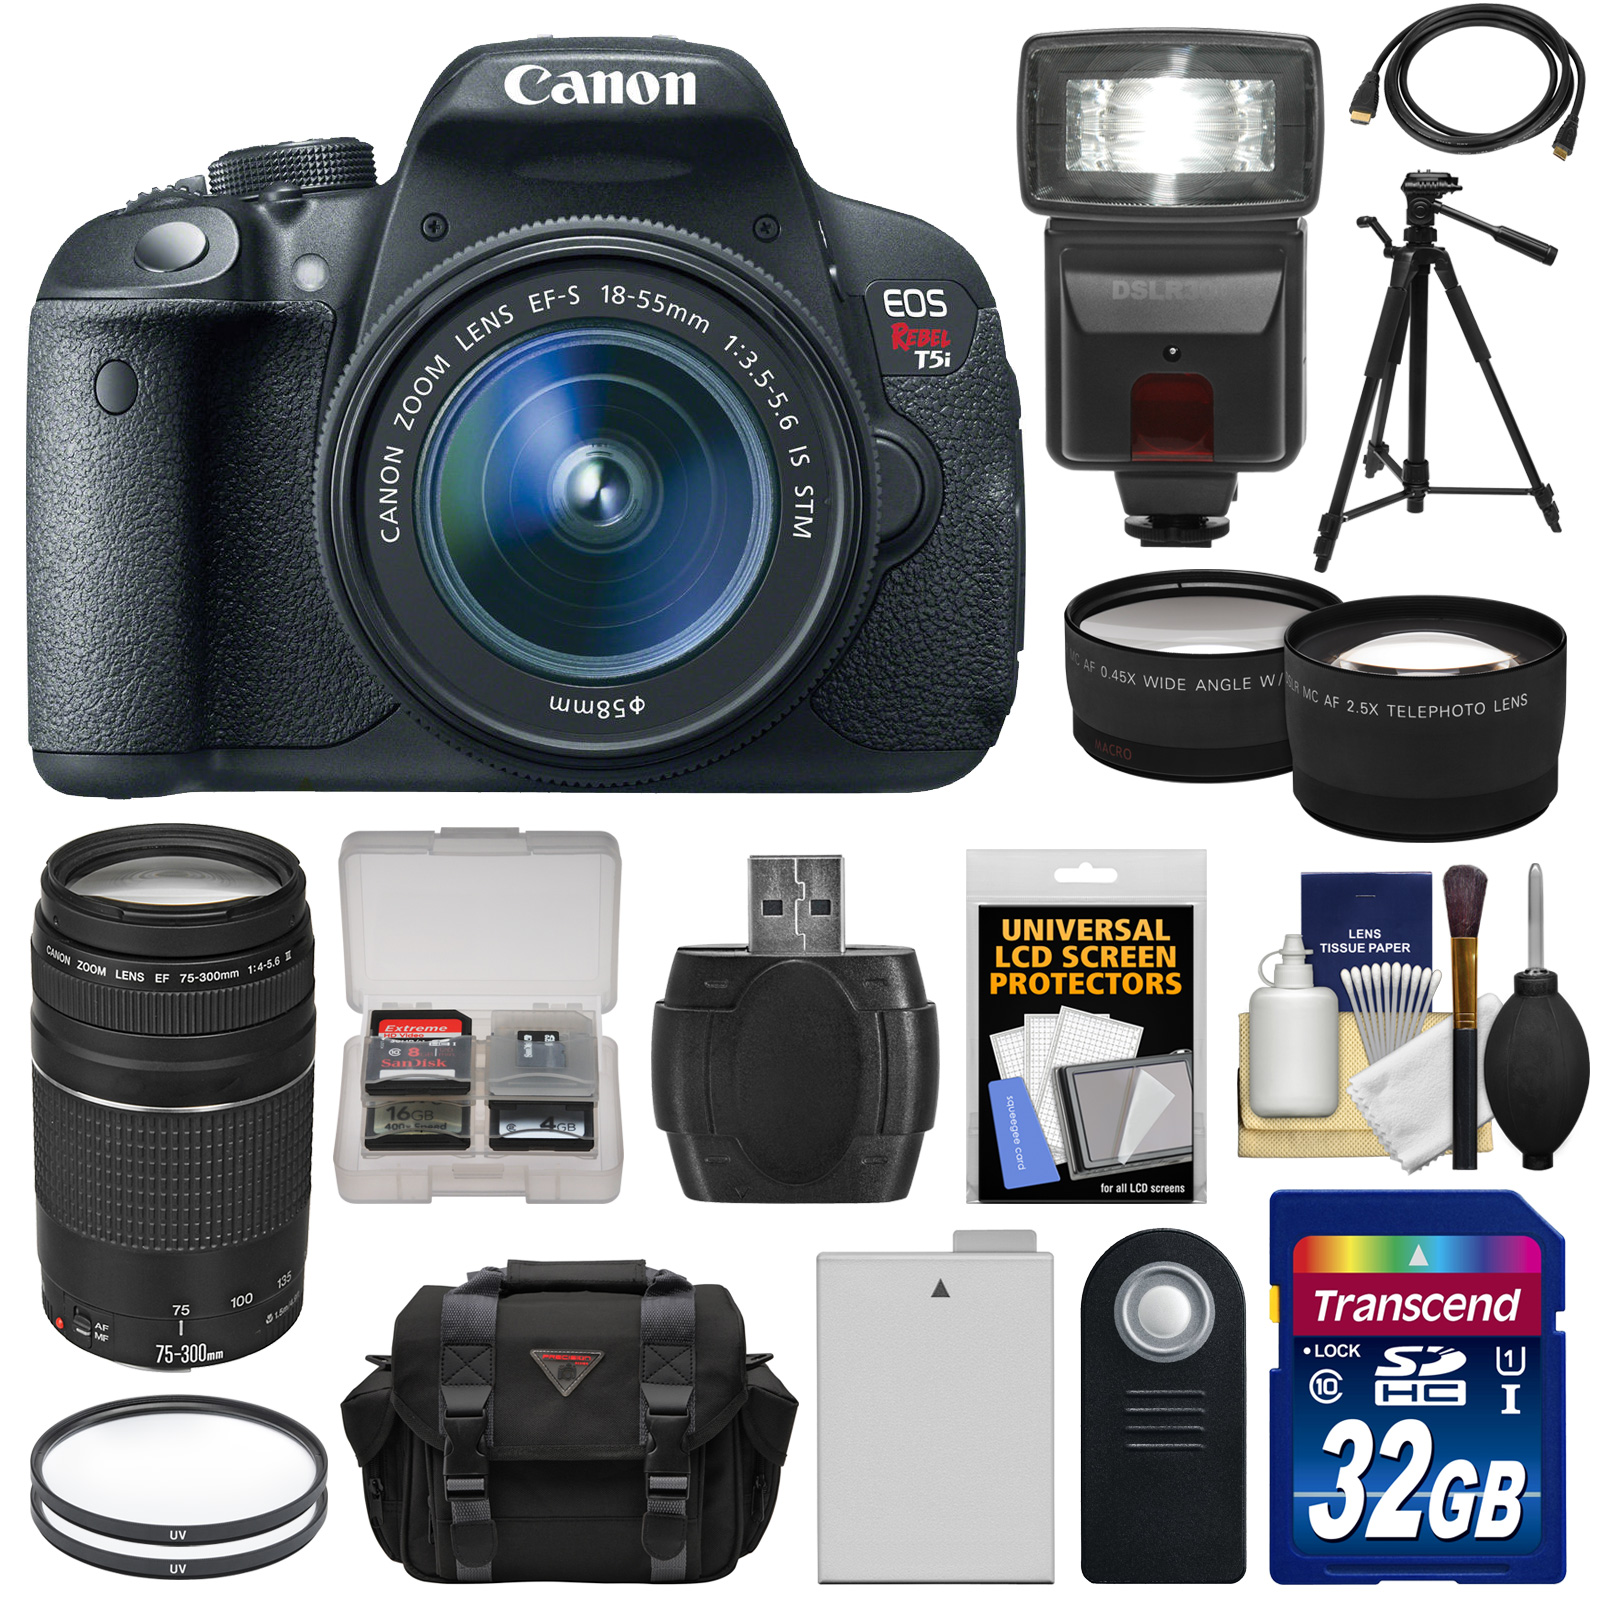 Canon EOS Rebel T5i Digital SLR Camera & EF-S 18-55mm IS STM & 75-300mm III Lens   32GB Card   Battery   Case   Flash   Tele/Wide Lenses   Tripod Kit